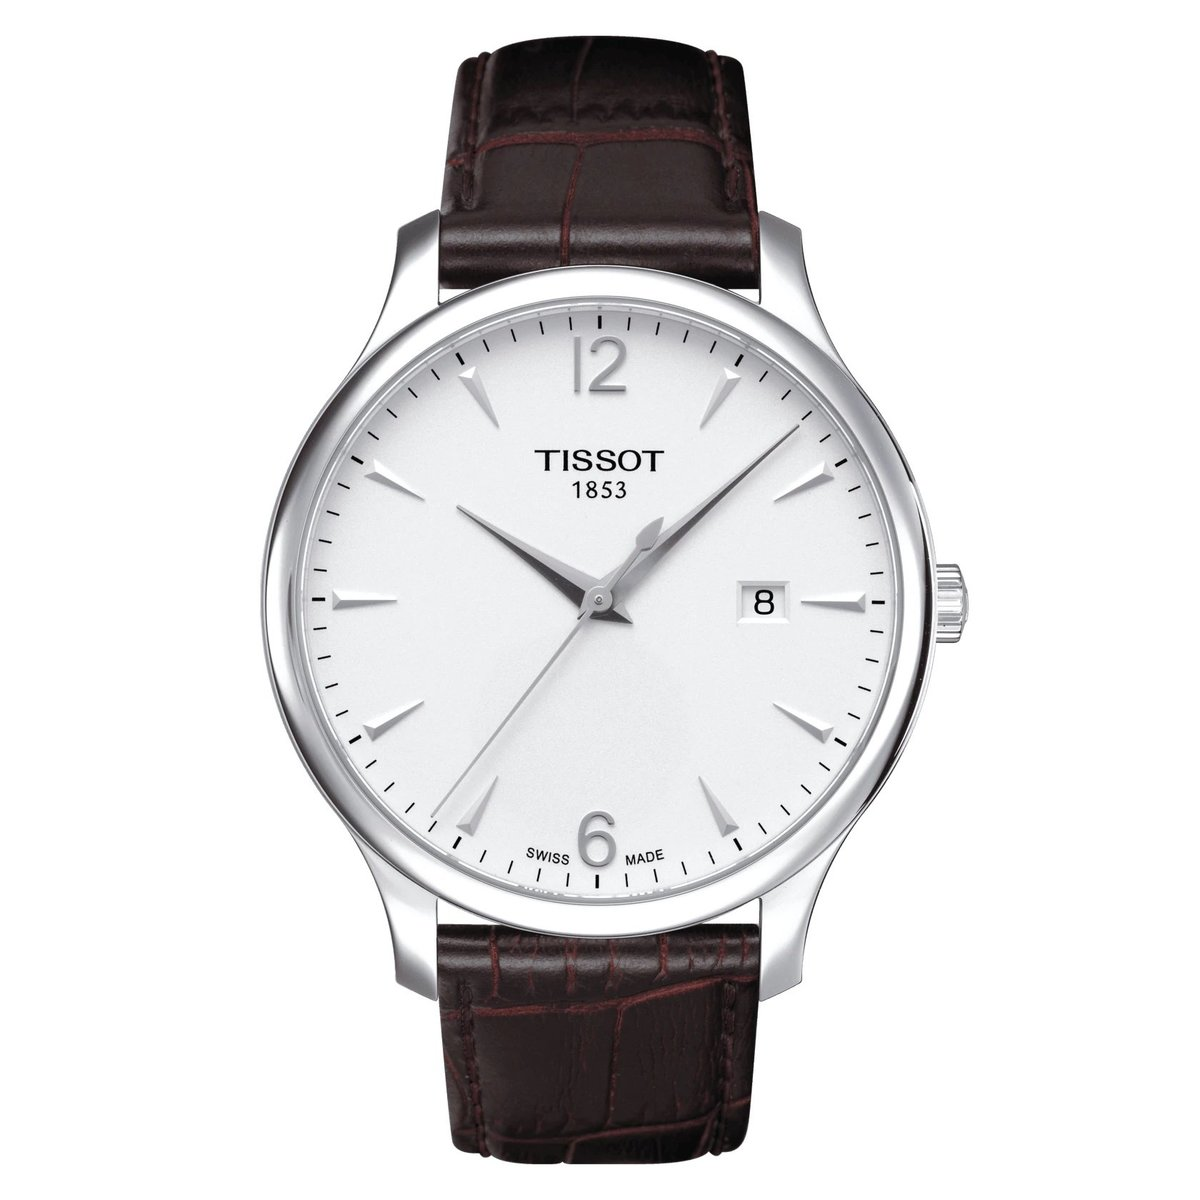 TISSOT T-Class Tradition Men's Leather Watch - Silver (parallel goods)